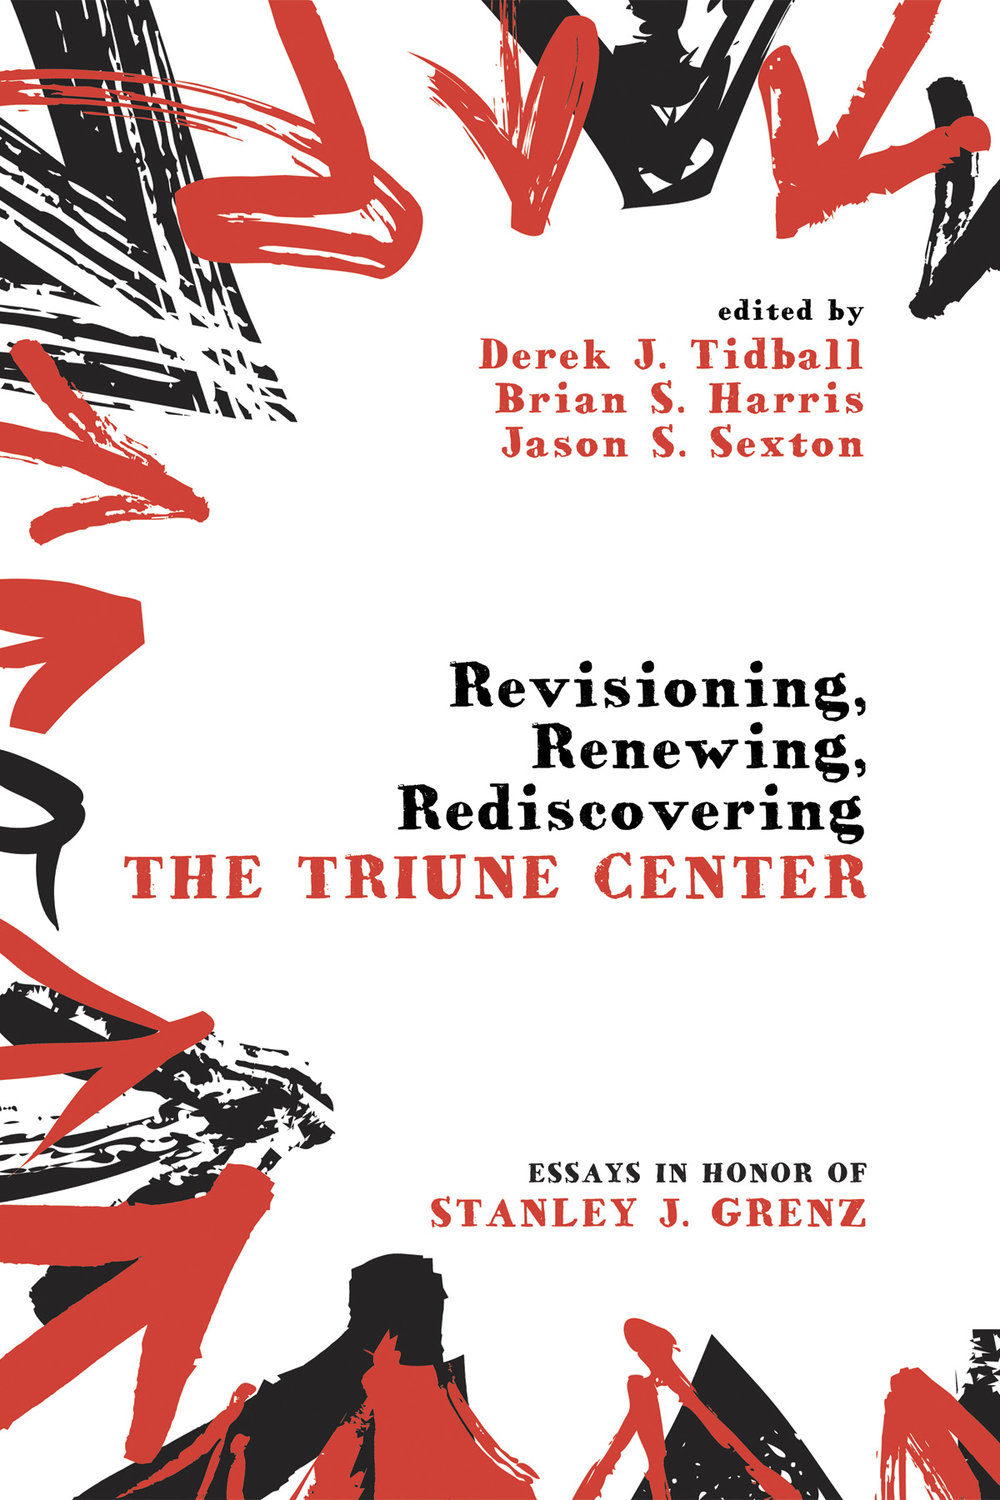 Revisioning, Renewing, Rediscovering the Triune Center: Essays in Honors of Stanley J. Grenz  (Cascade Books)